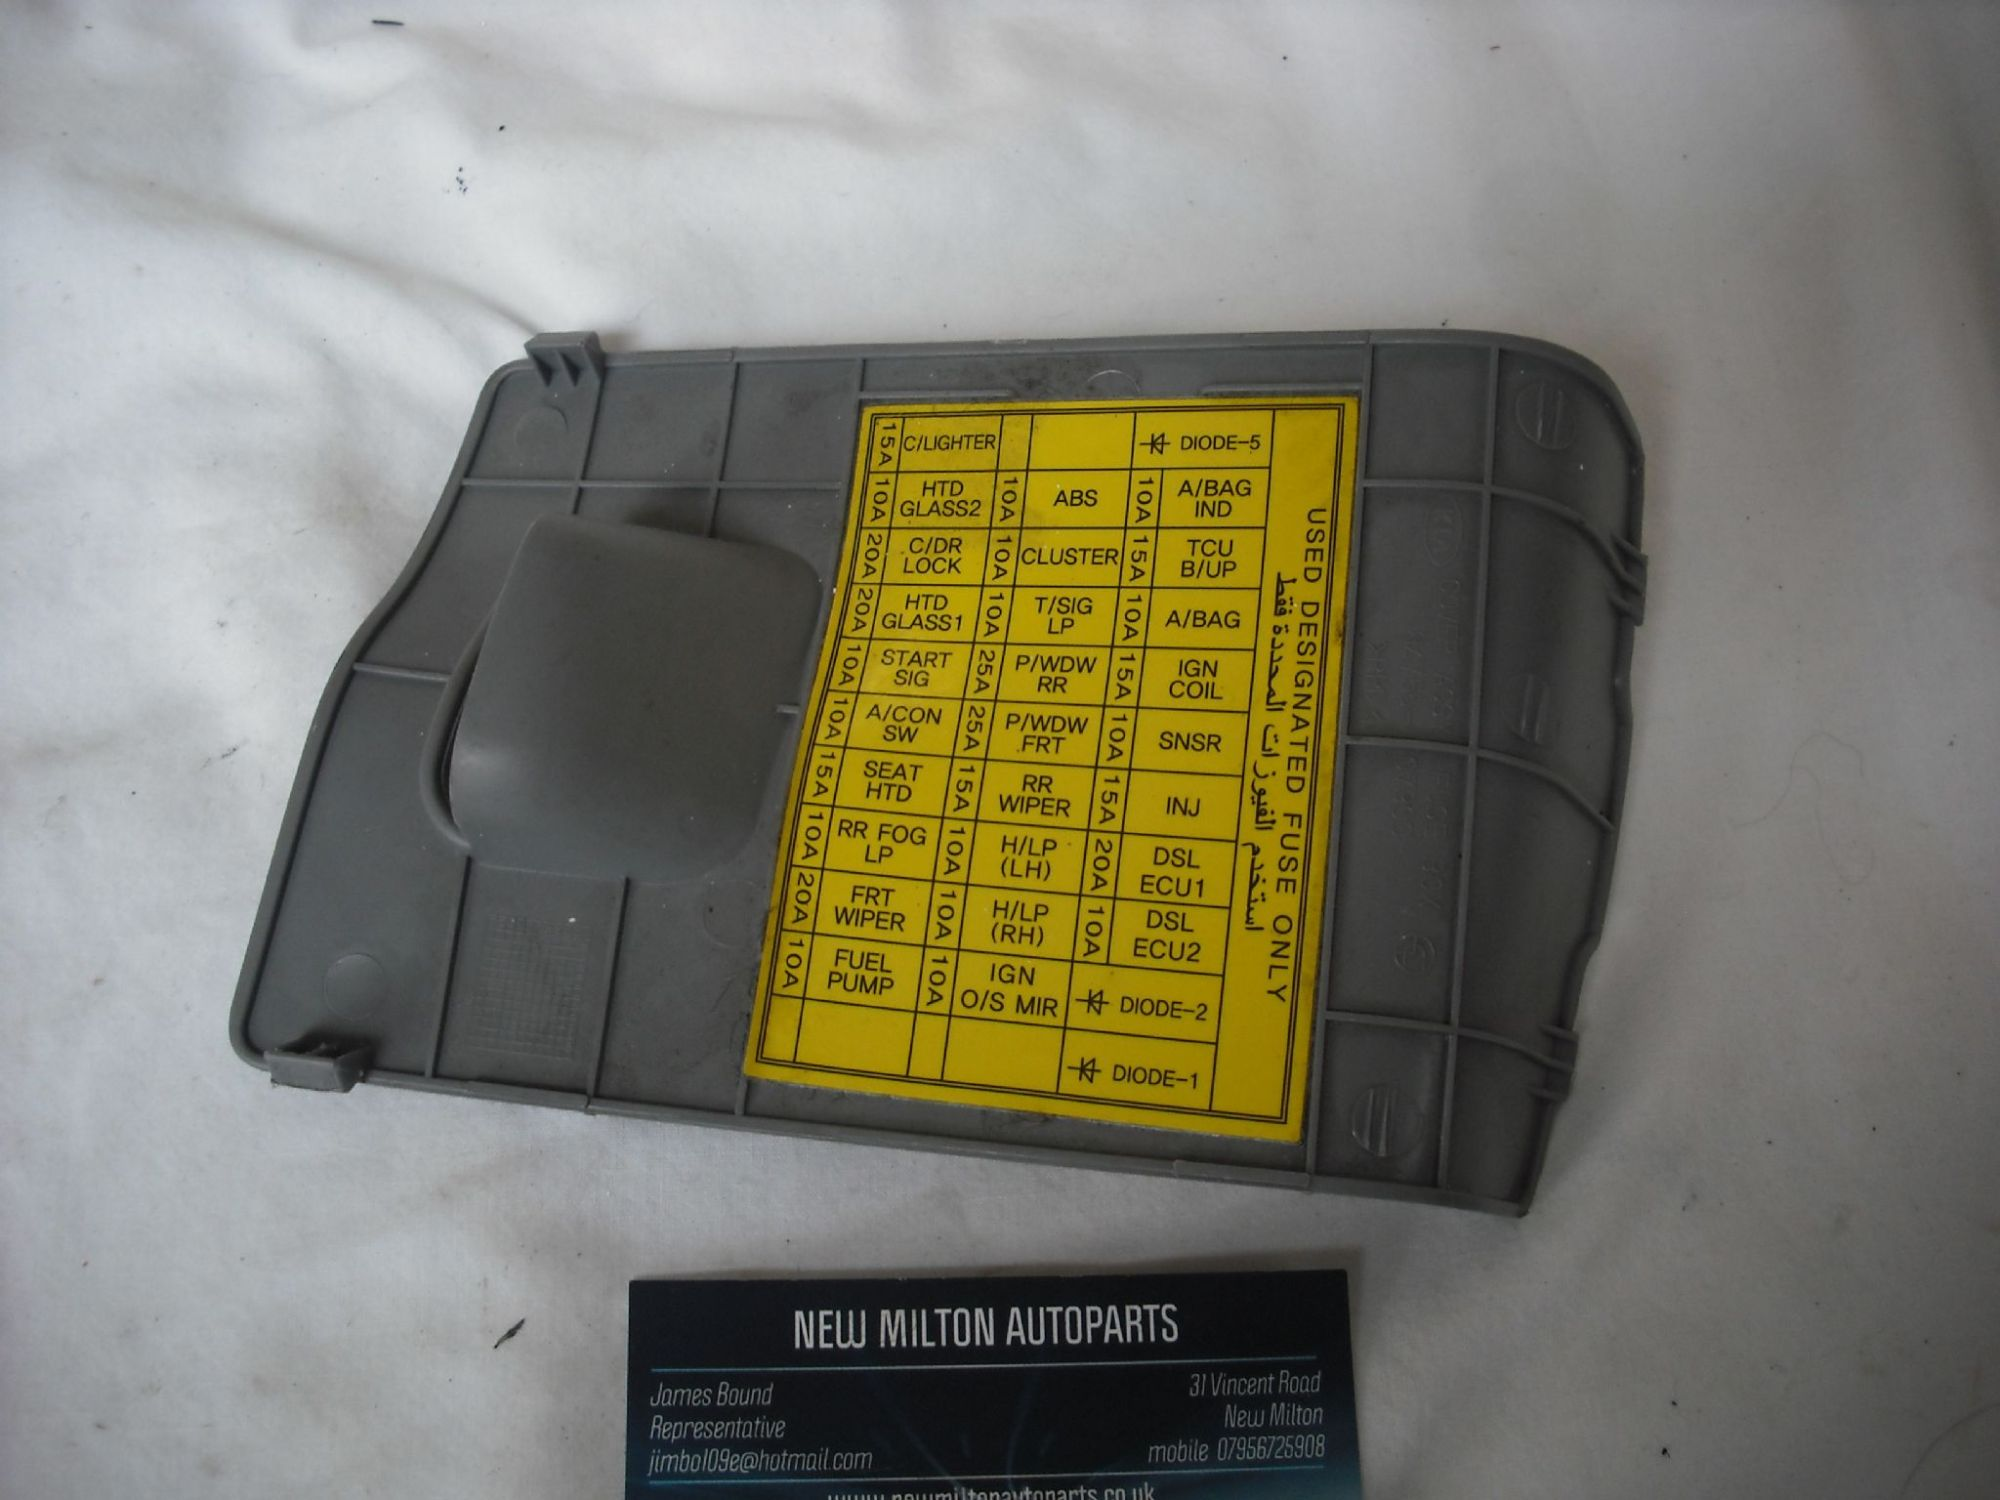 hight resolution of 2005 kia sorento fuse box 2005 ford econoline fuse box 2009 kia spectra fuse diagram 2012 kia soul fuse diagram